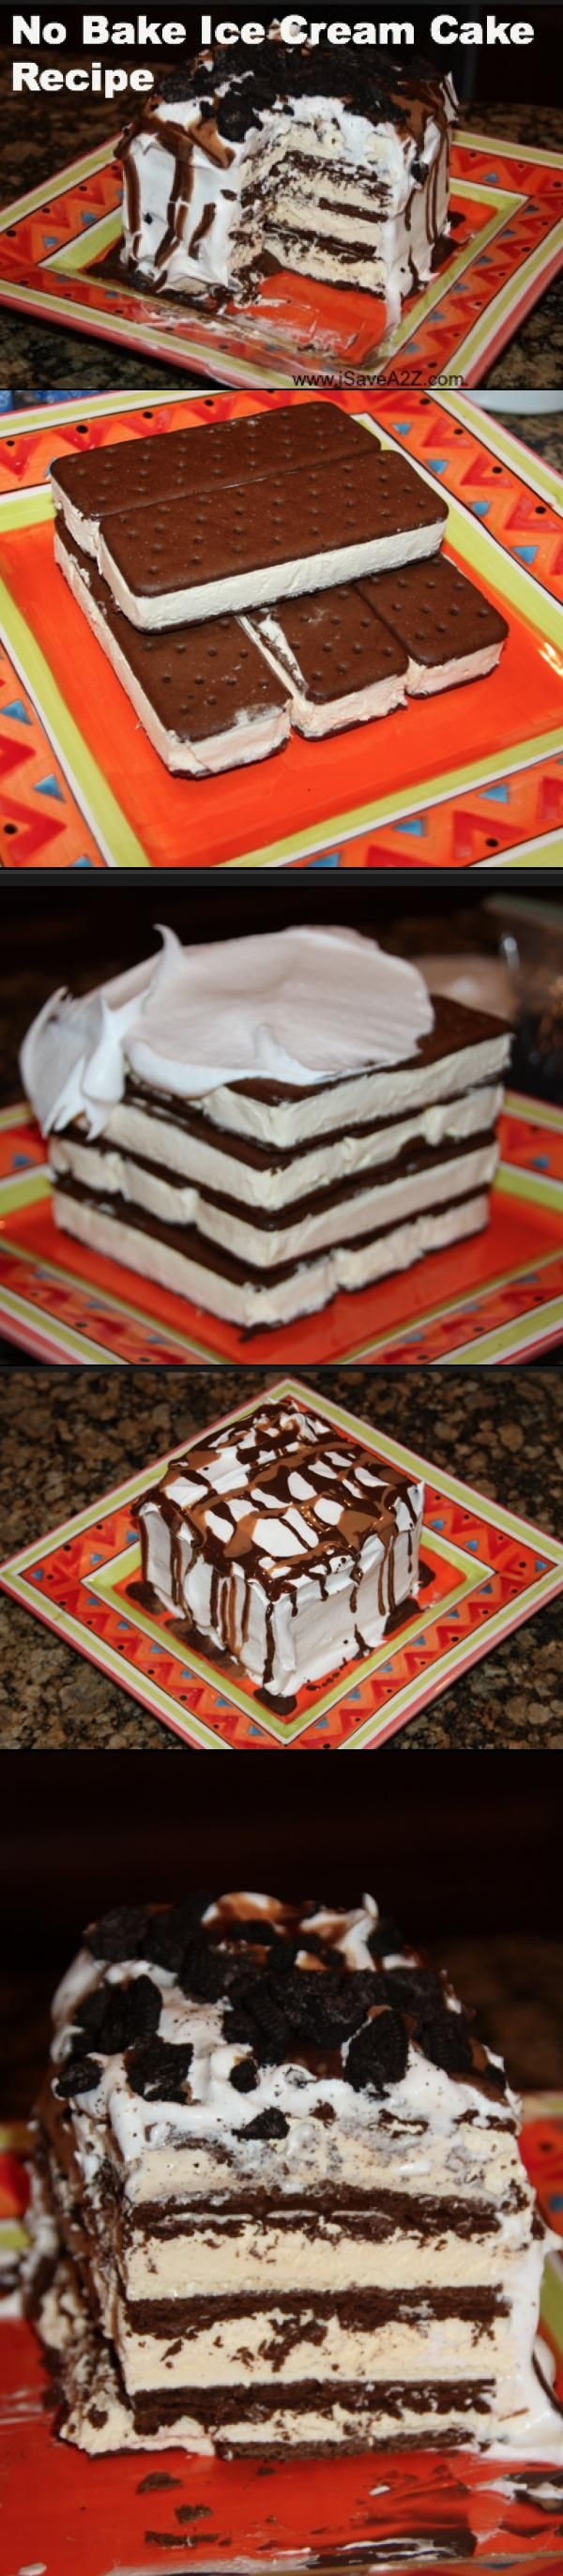 No Bake Ice Cream Cake... - Couldn't find the original, the link goes to a blogger who makes individual ice cream cakes.